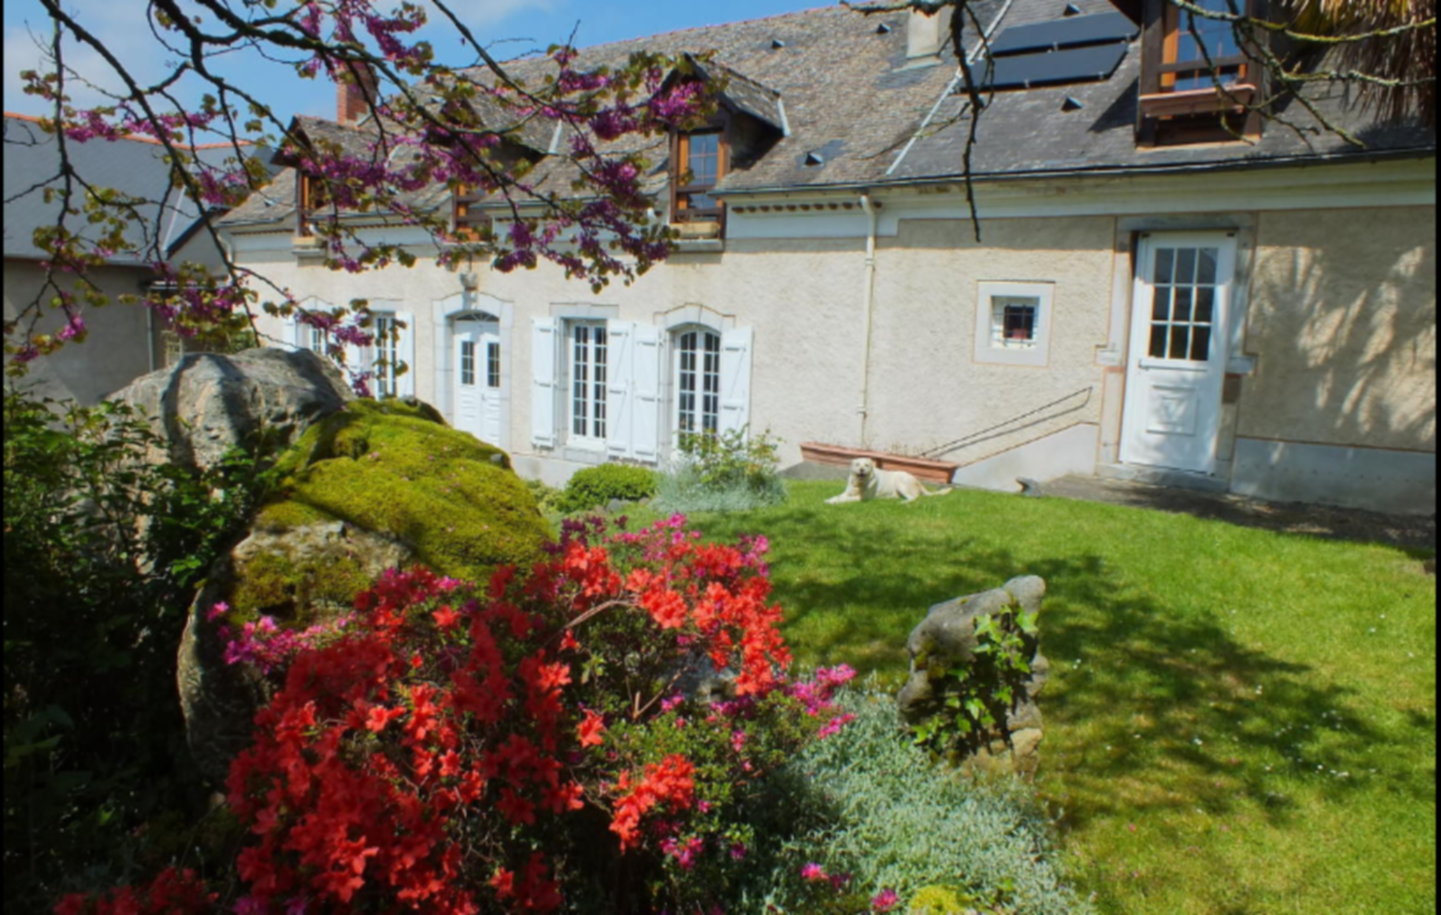 A close up of a flower garden in front of a house at Anousta.